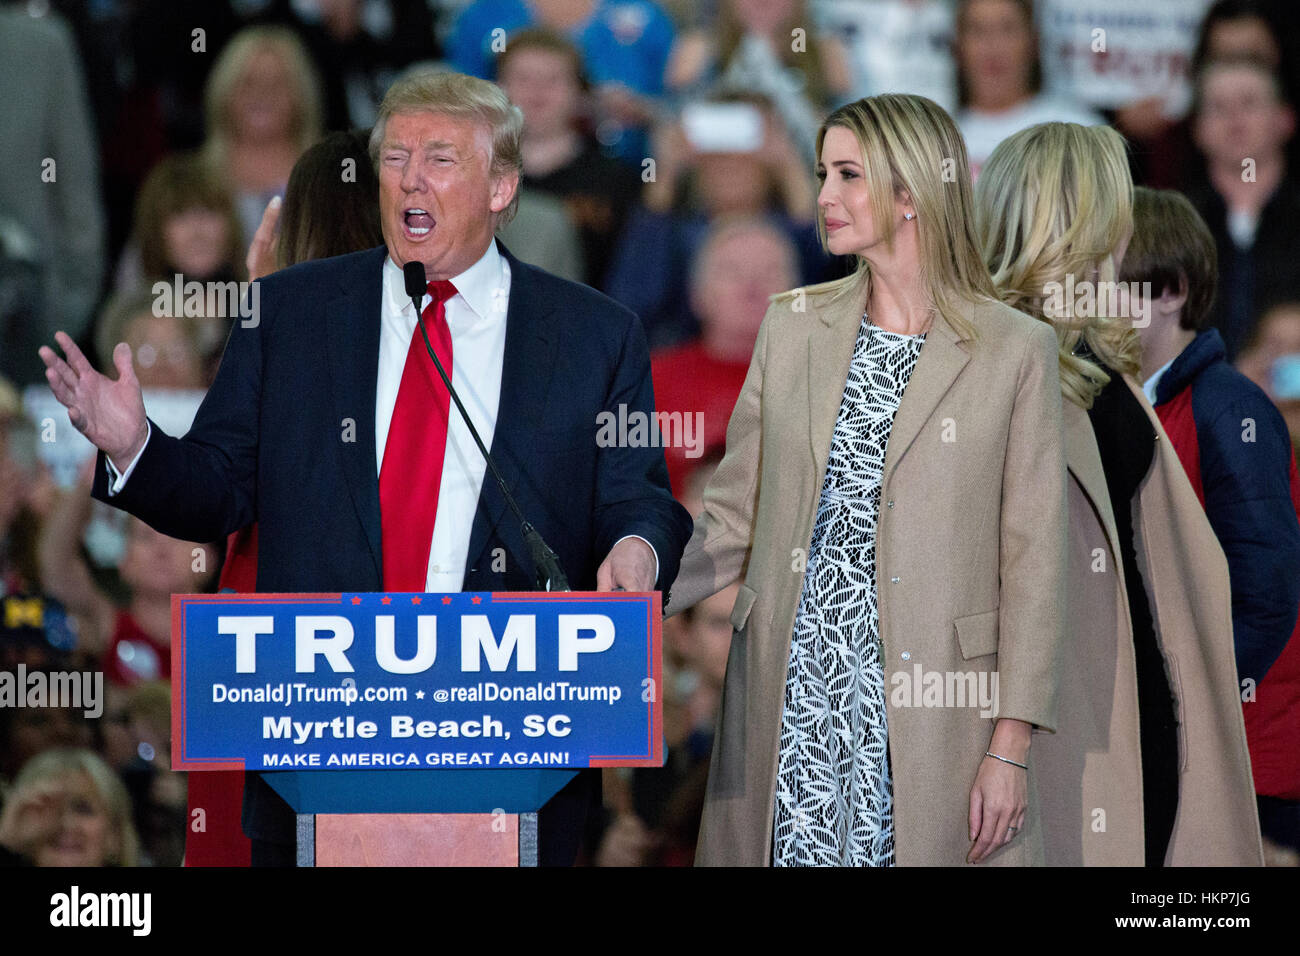 Republican presidential candidate billionaire Donald Trump introduces his daughter Ivanka Trump during a campaign - Stock Image